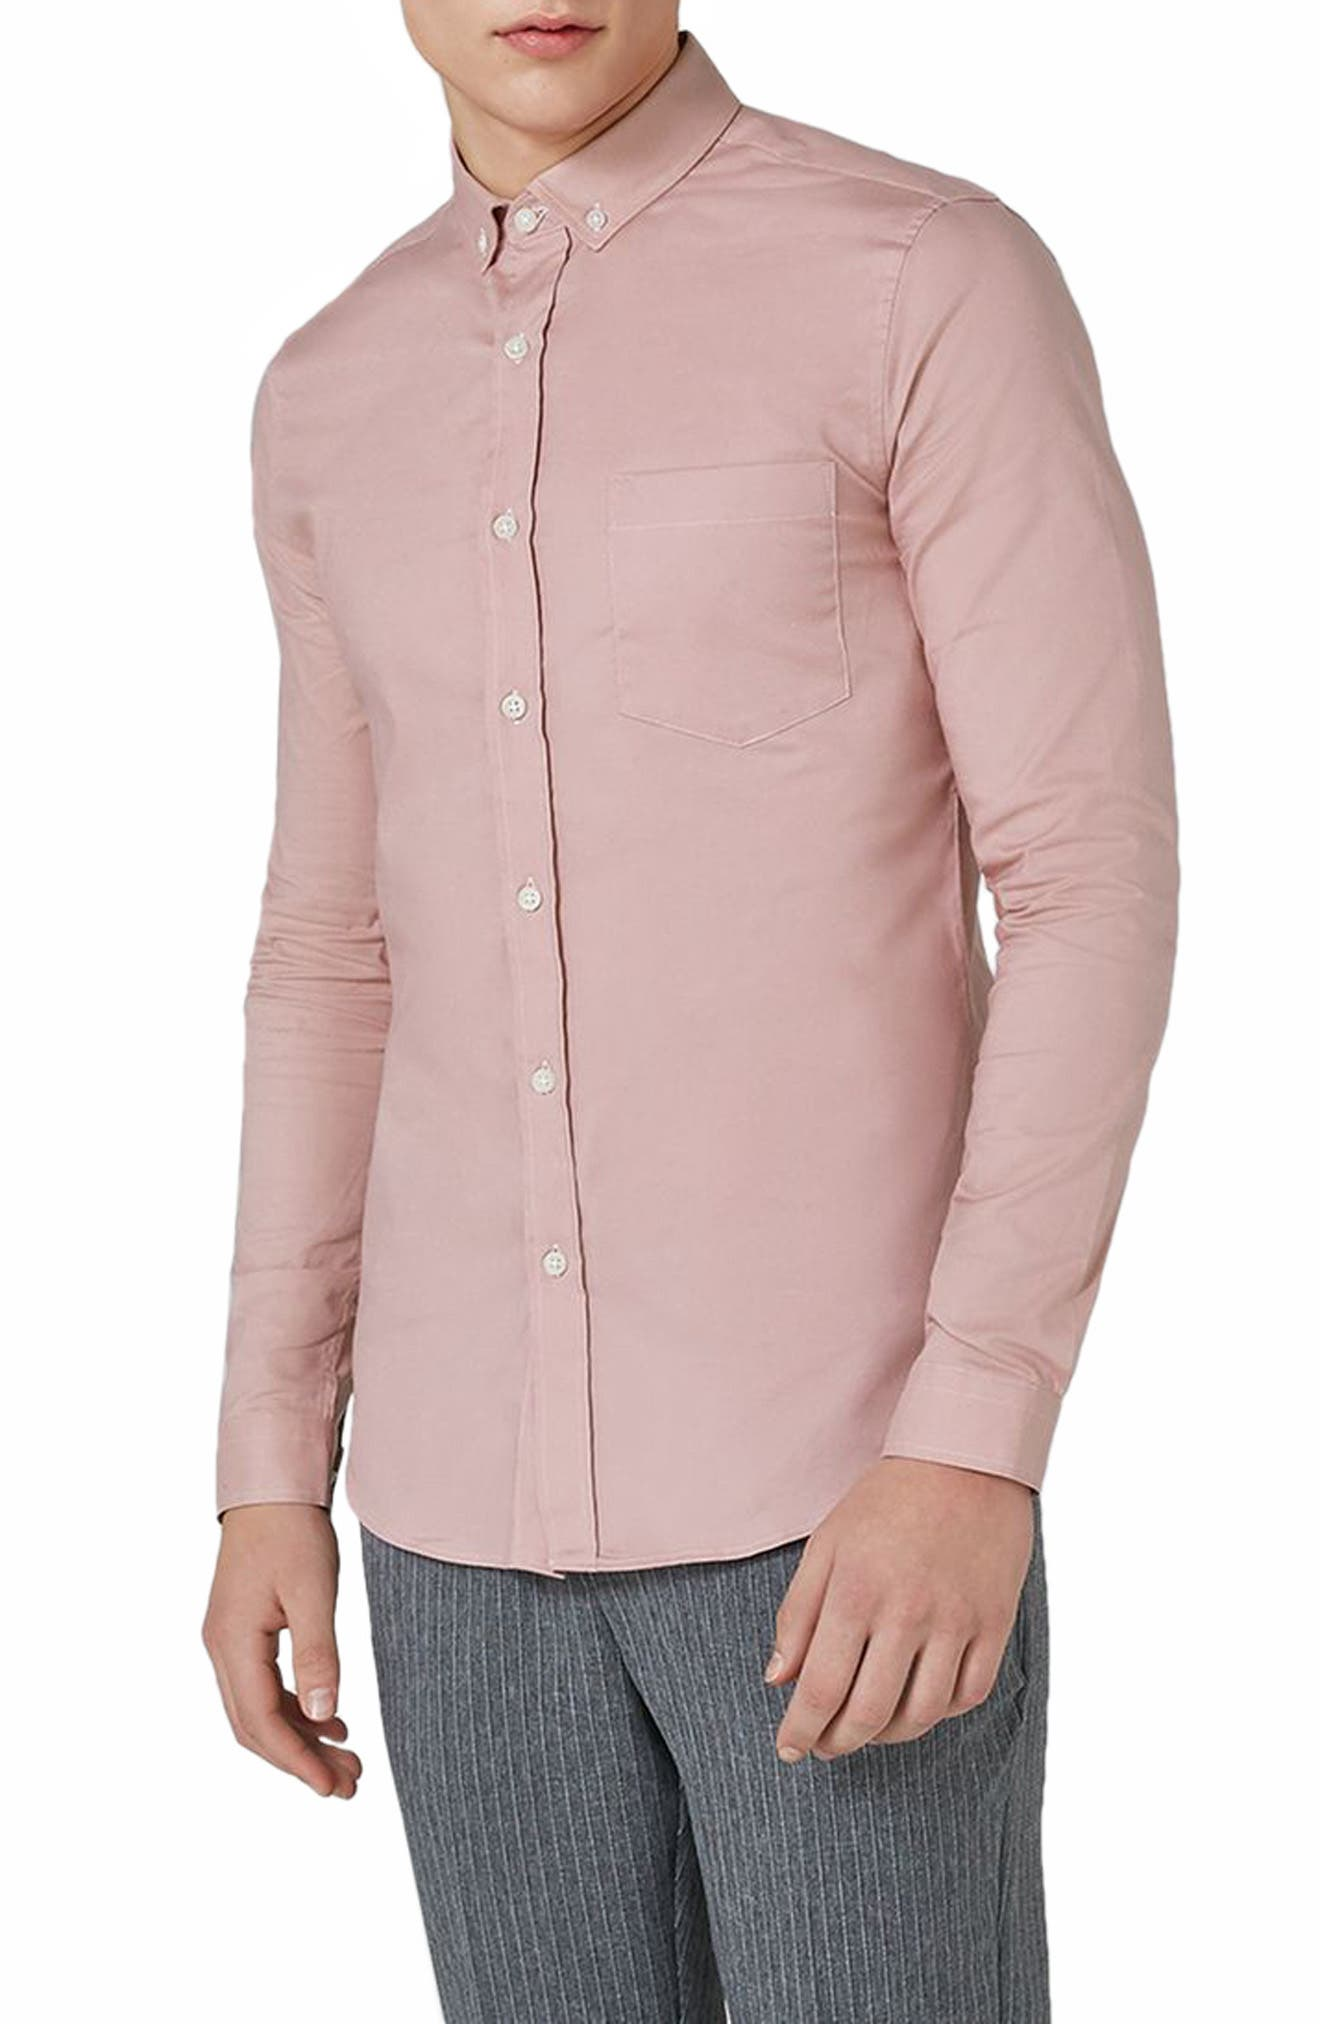 Muscle Fit Oxford Shirt,                             Main thumbnail 1, color,                             Pink